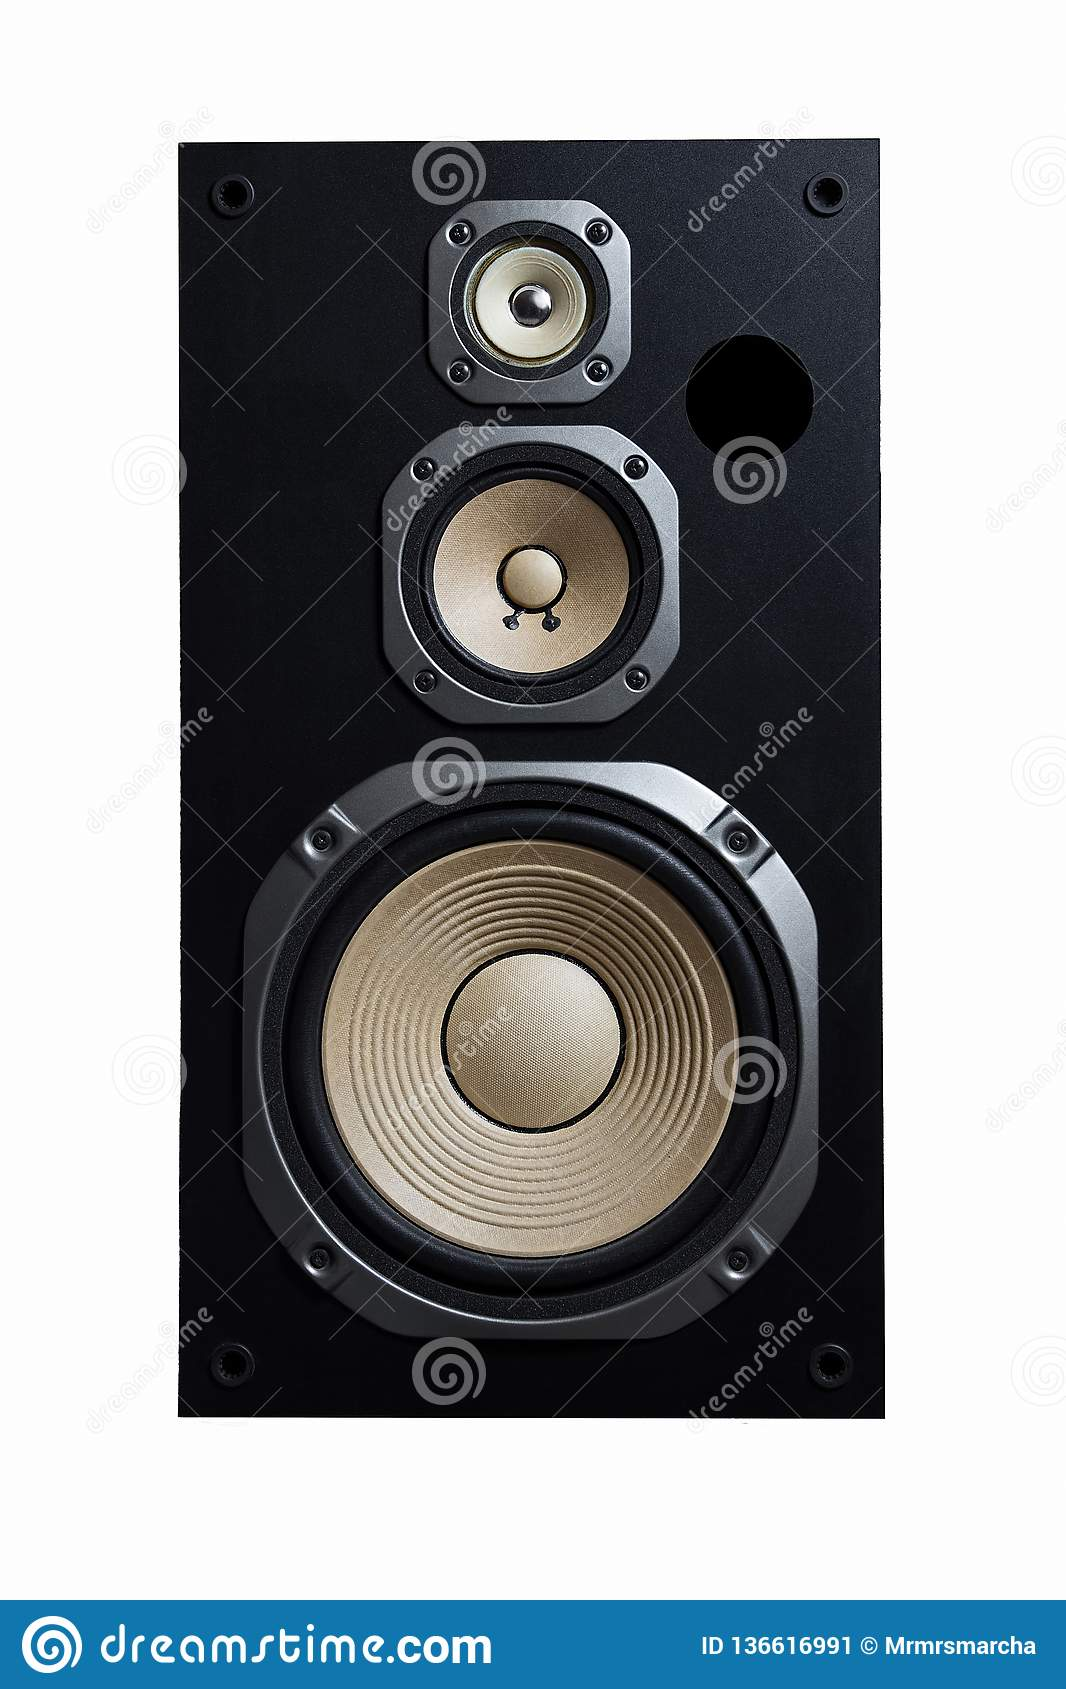 High Quality Loudspeakers Hifi Sound System In Shop For Sound Recording Studio Professional Hi Fi Cabinet Speaker Box Audio Stock Image Image Of Quality Power 136616991